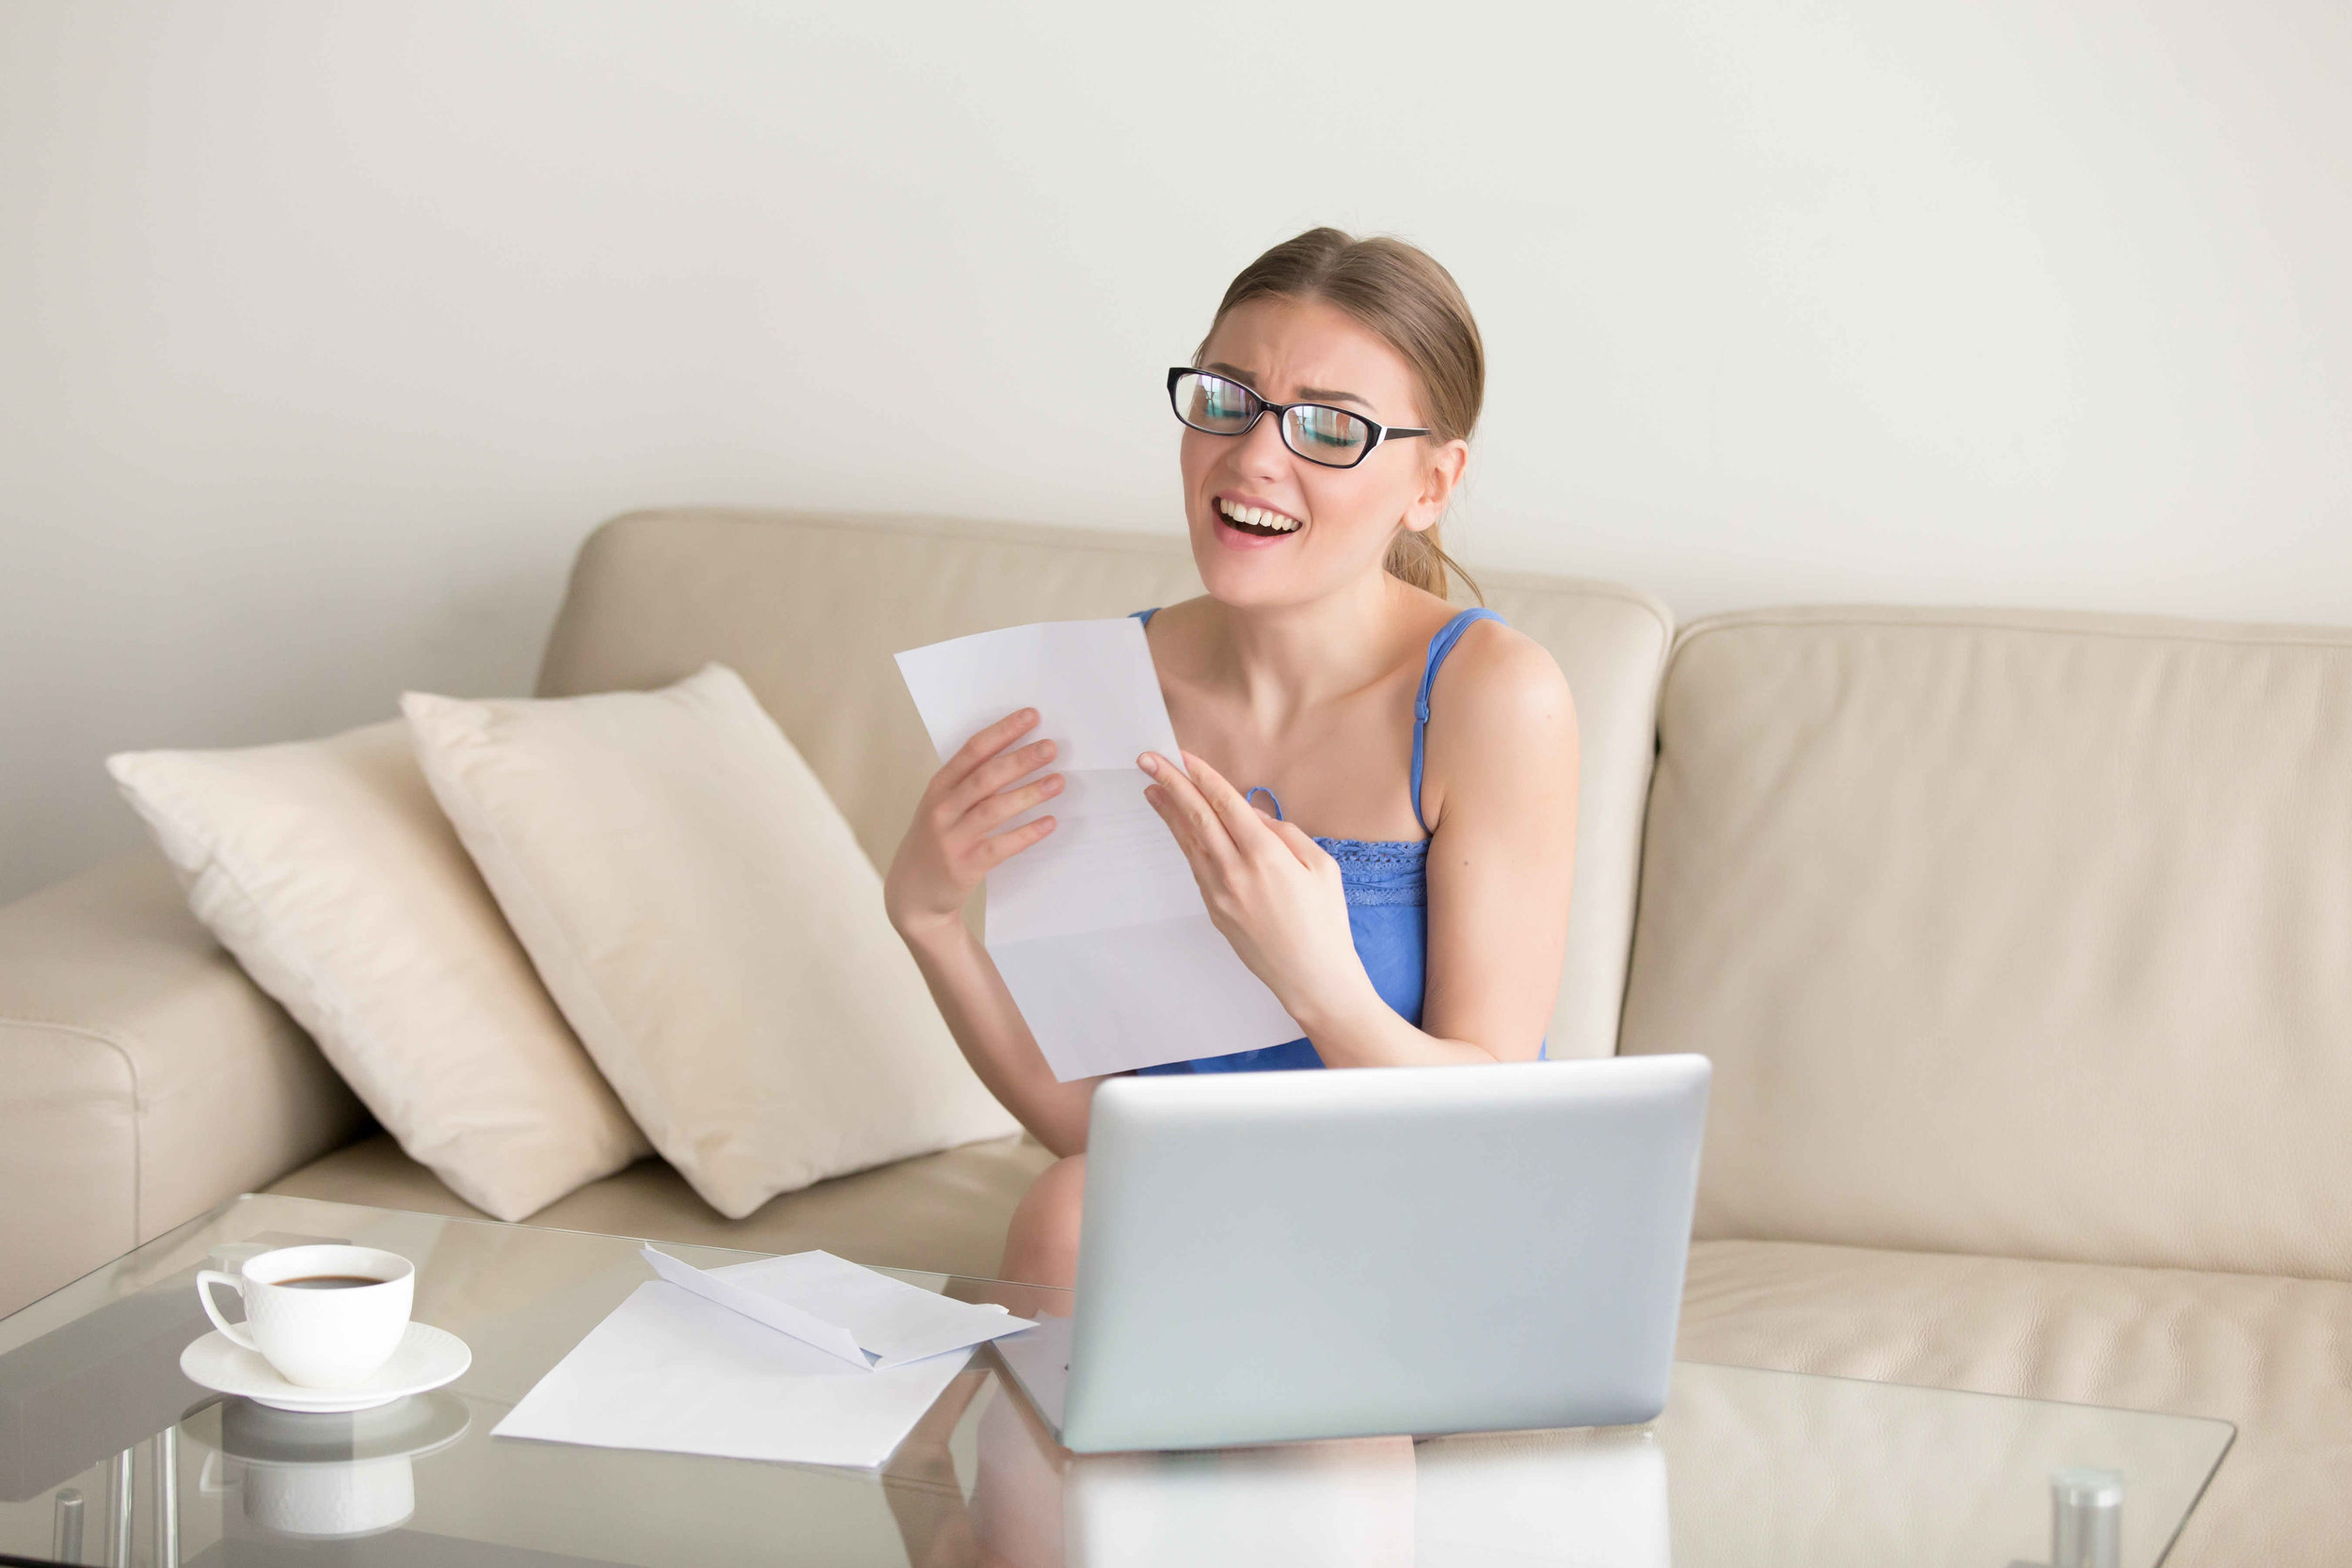 young woman with glasses enjoying reading a document